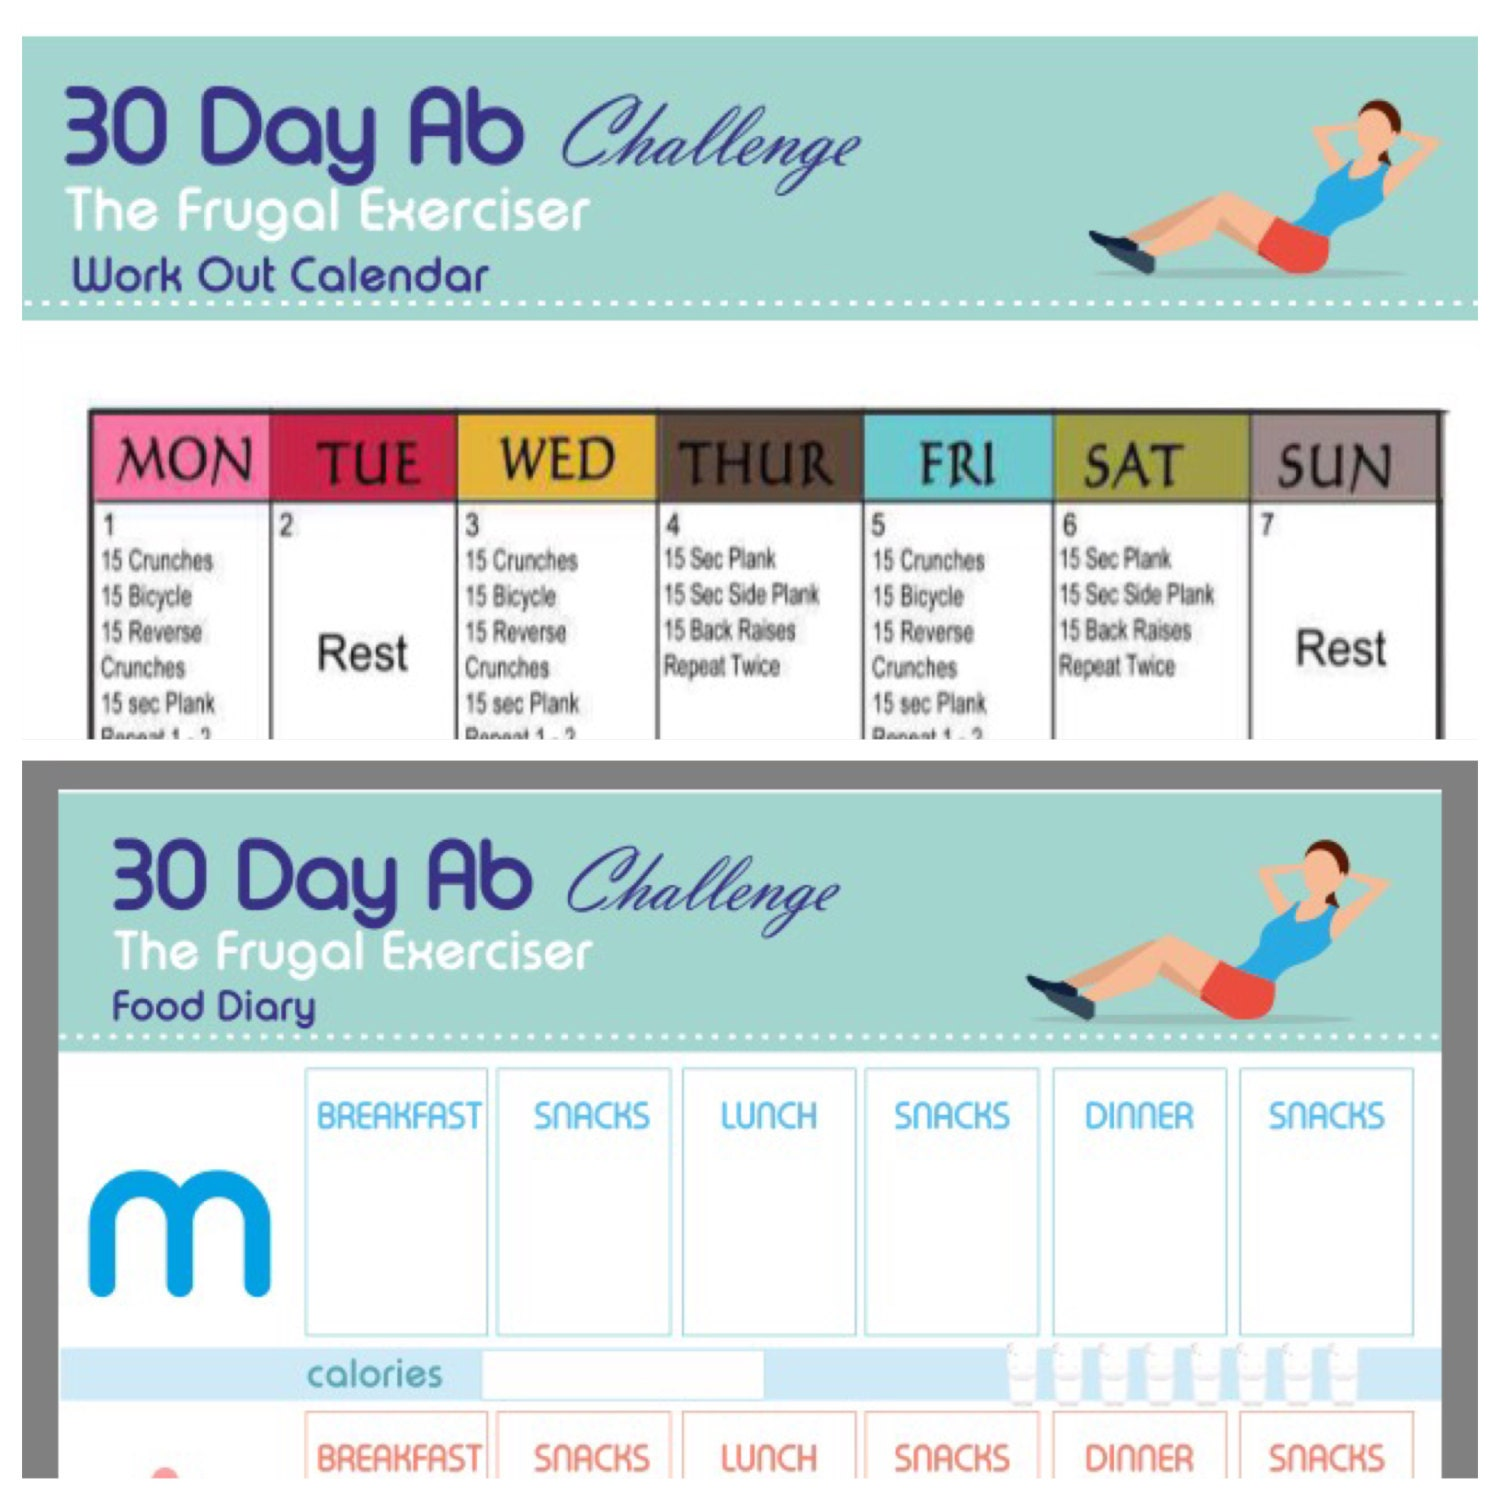 Workout List: Weight Loss Plan Ab Workout Printable The 30 Day Ab